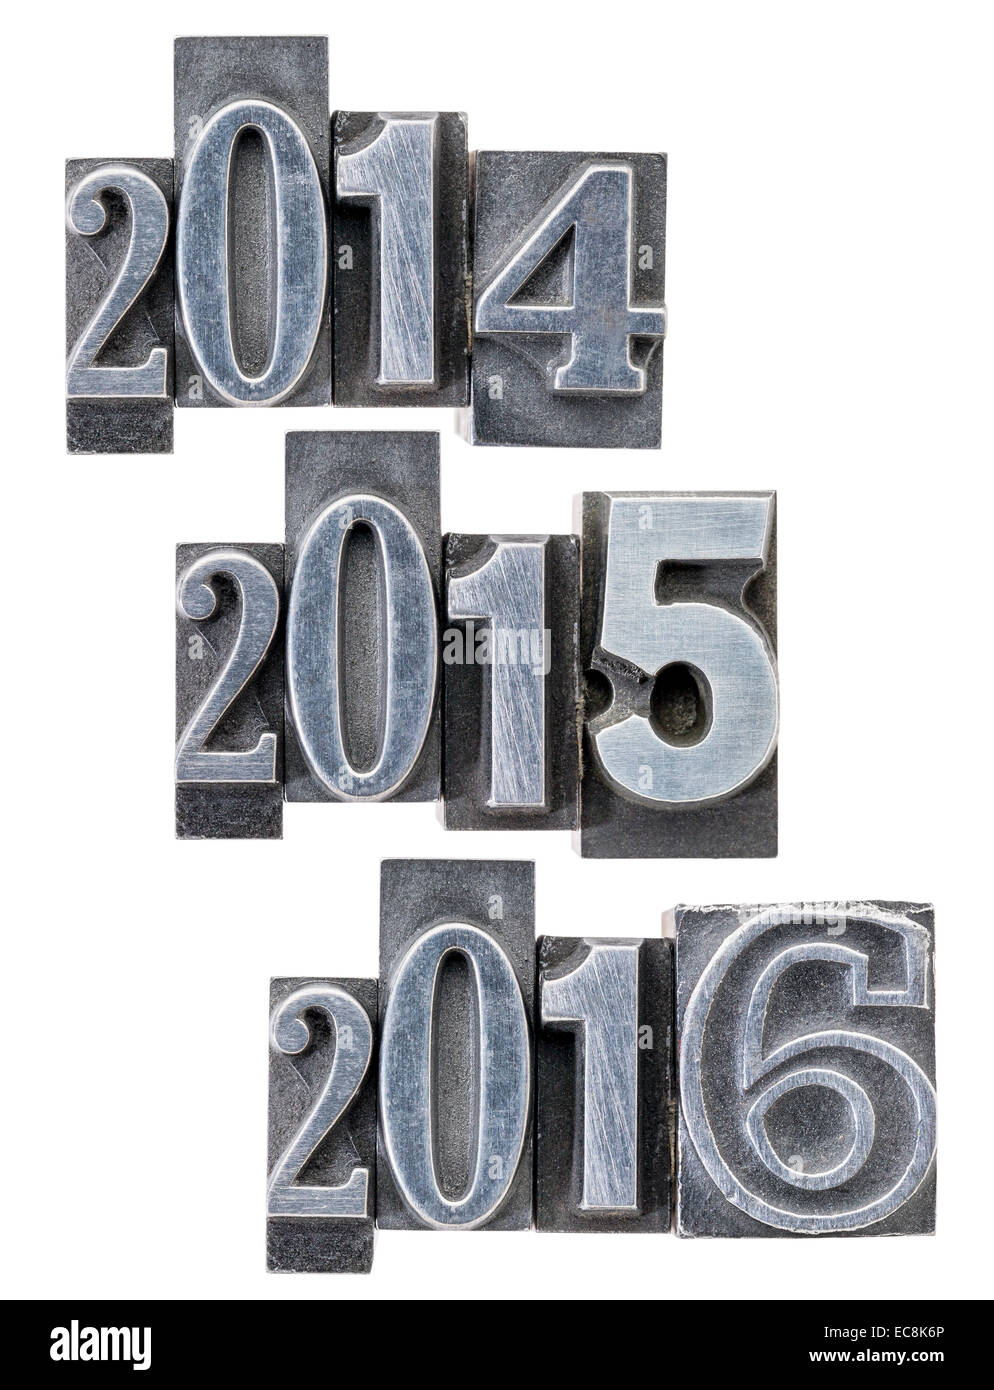 passing and incoming years 2014, 2015, 2016 - isolated numbers in vintage metal printing blocks - Stock Image